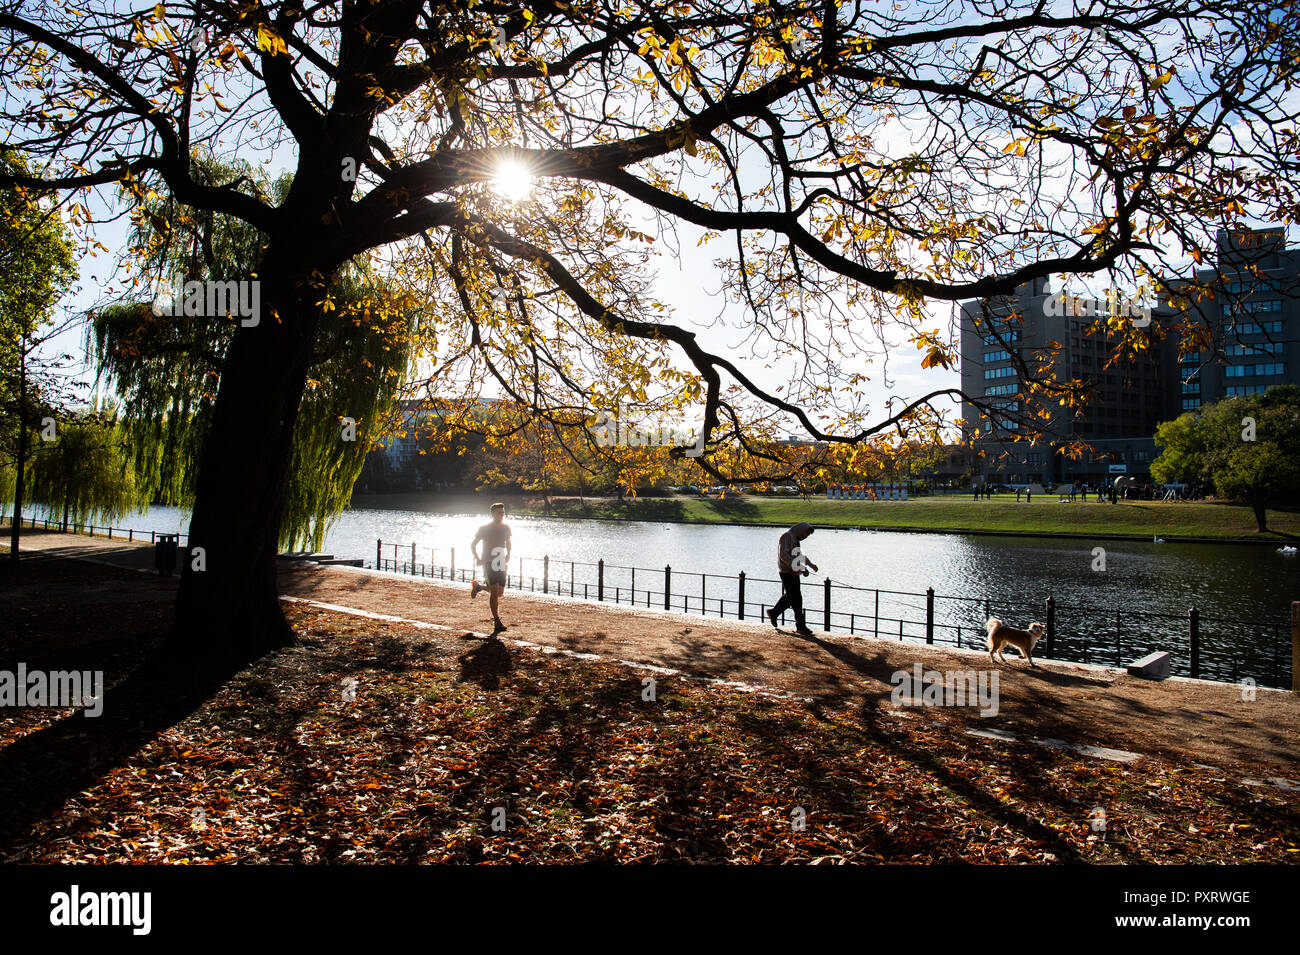 Berlin, Germany. 24th Oct, 2018. People are walking along the Landwehr Canal. Credit: Arne Immanuel Bänsch/dpa/Alamy Live News - Stock Image